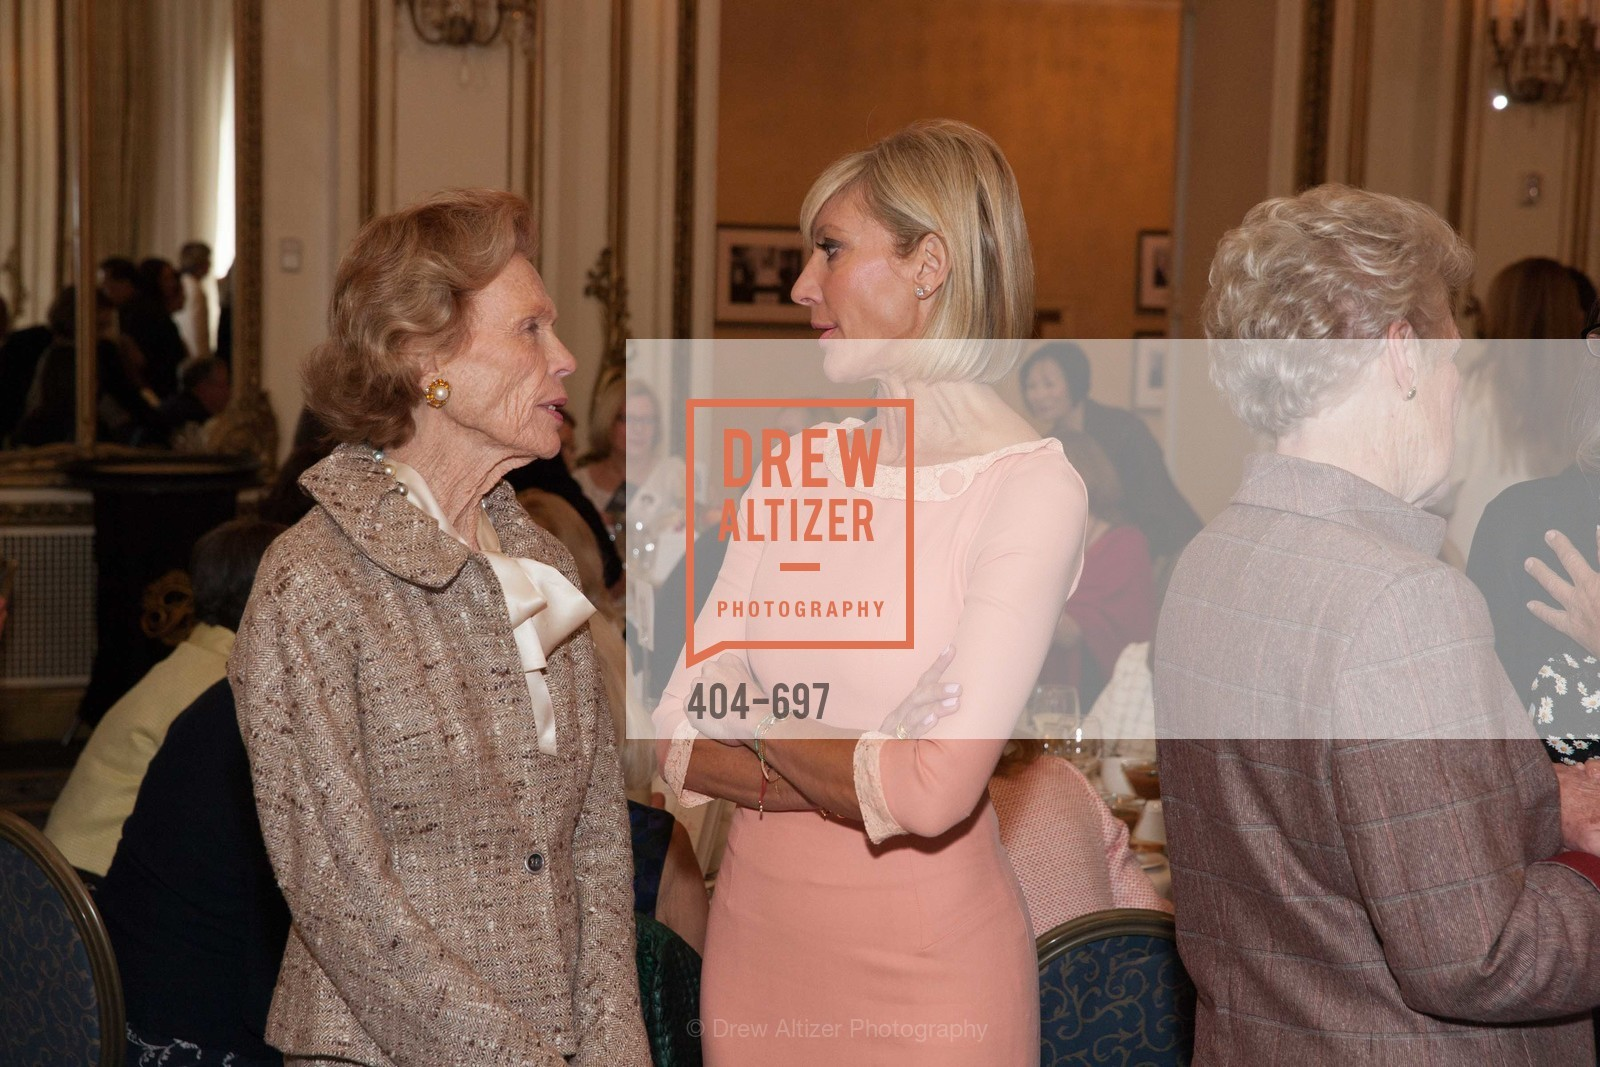 Barbara Callander, Janet Reilly, JUNIOR LEAGUE OF SAN FRANCISCO's WATCH Luncheon, US, May 5th, 2015,Drew Altizer, Drew Altizer Photography, full-service agency, private events, San Francisco photographer, photographer california